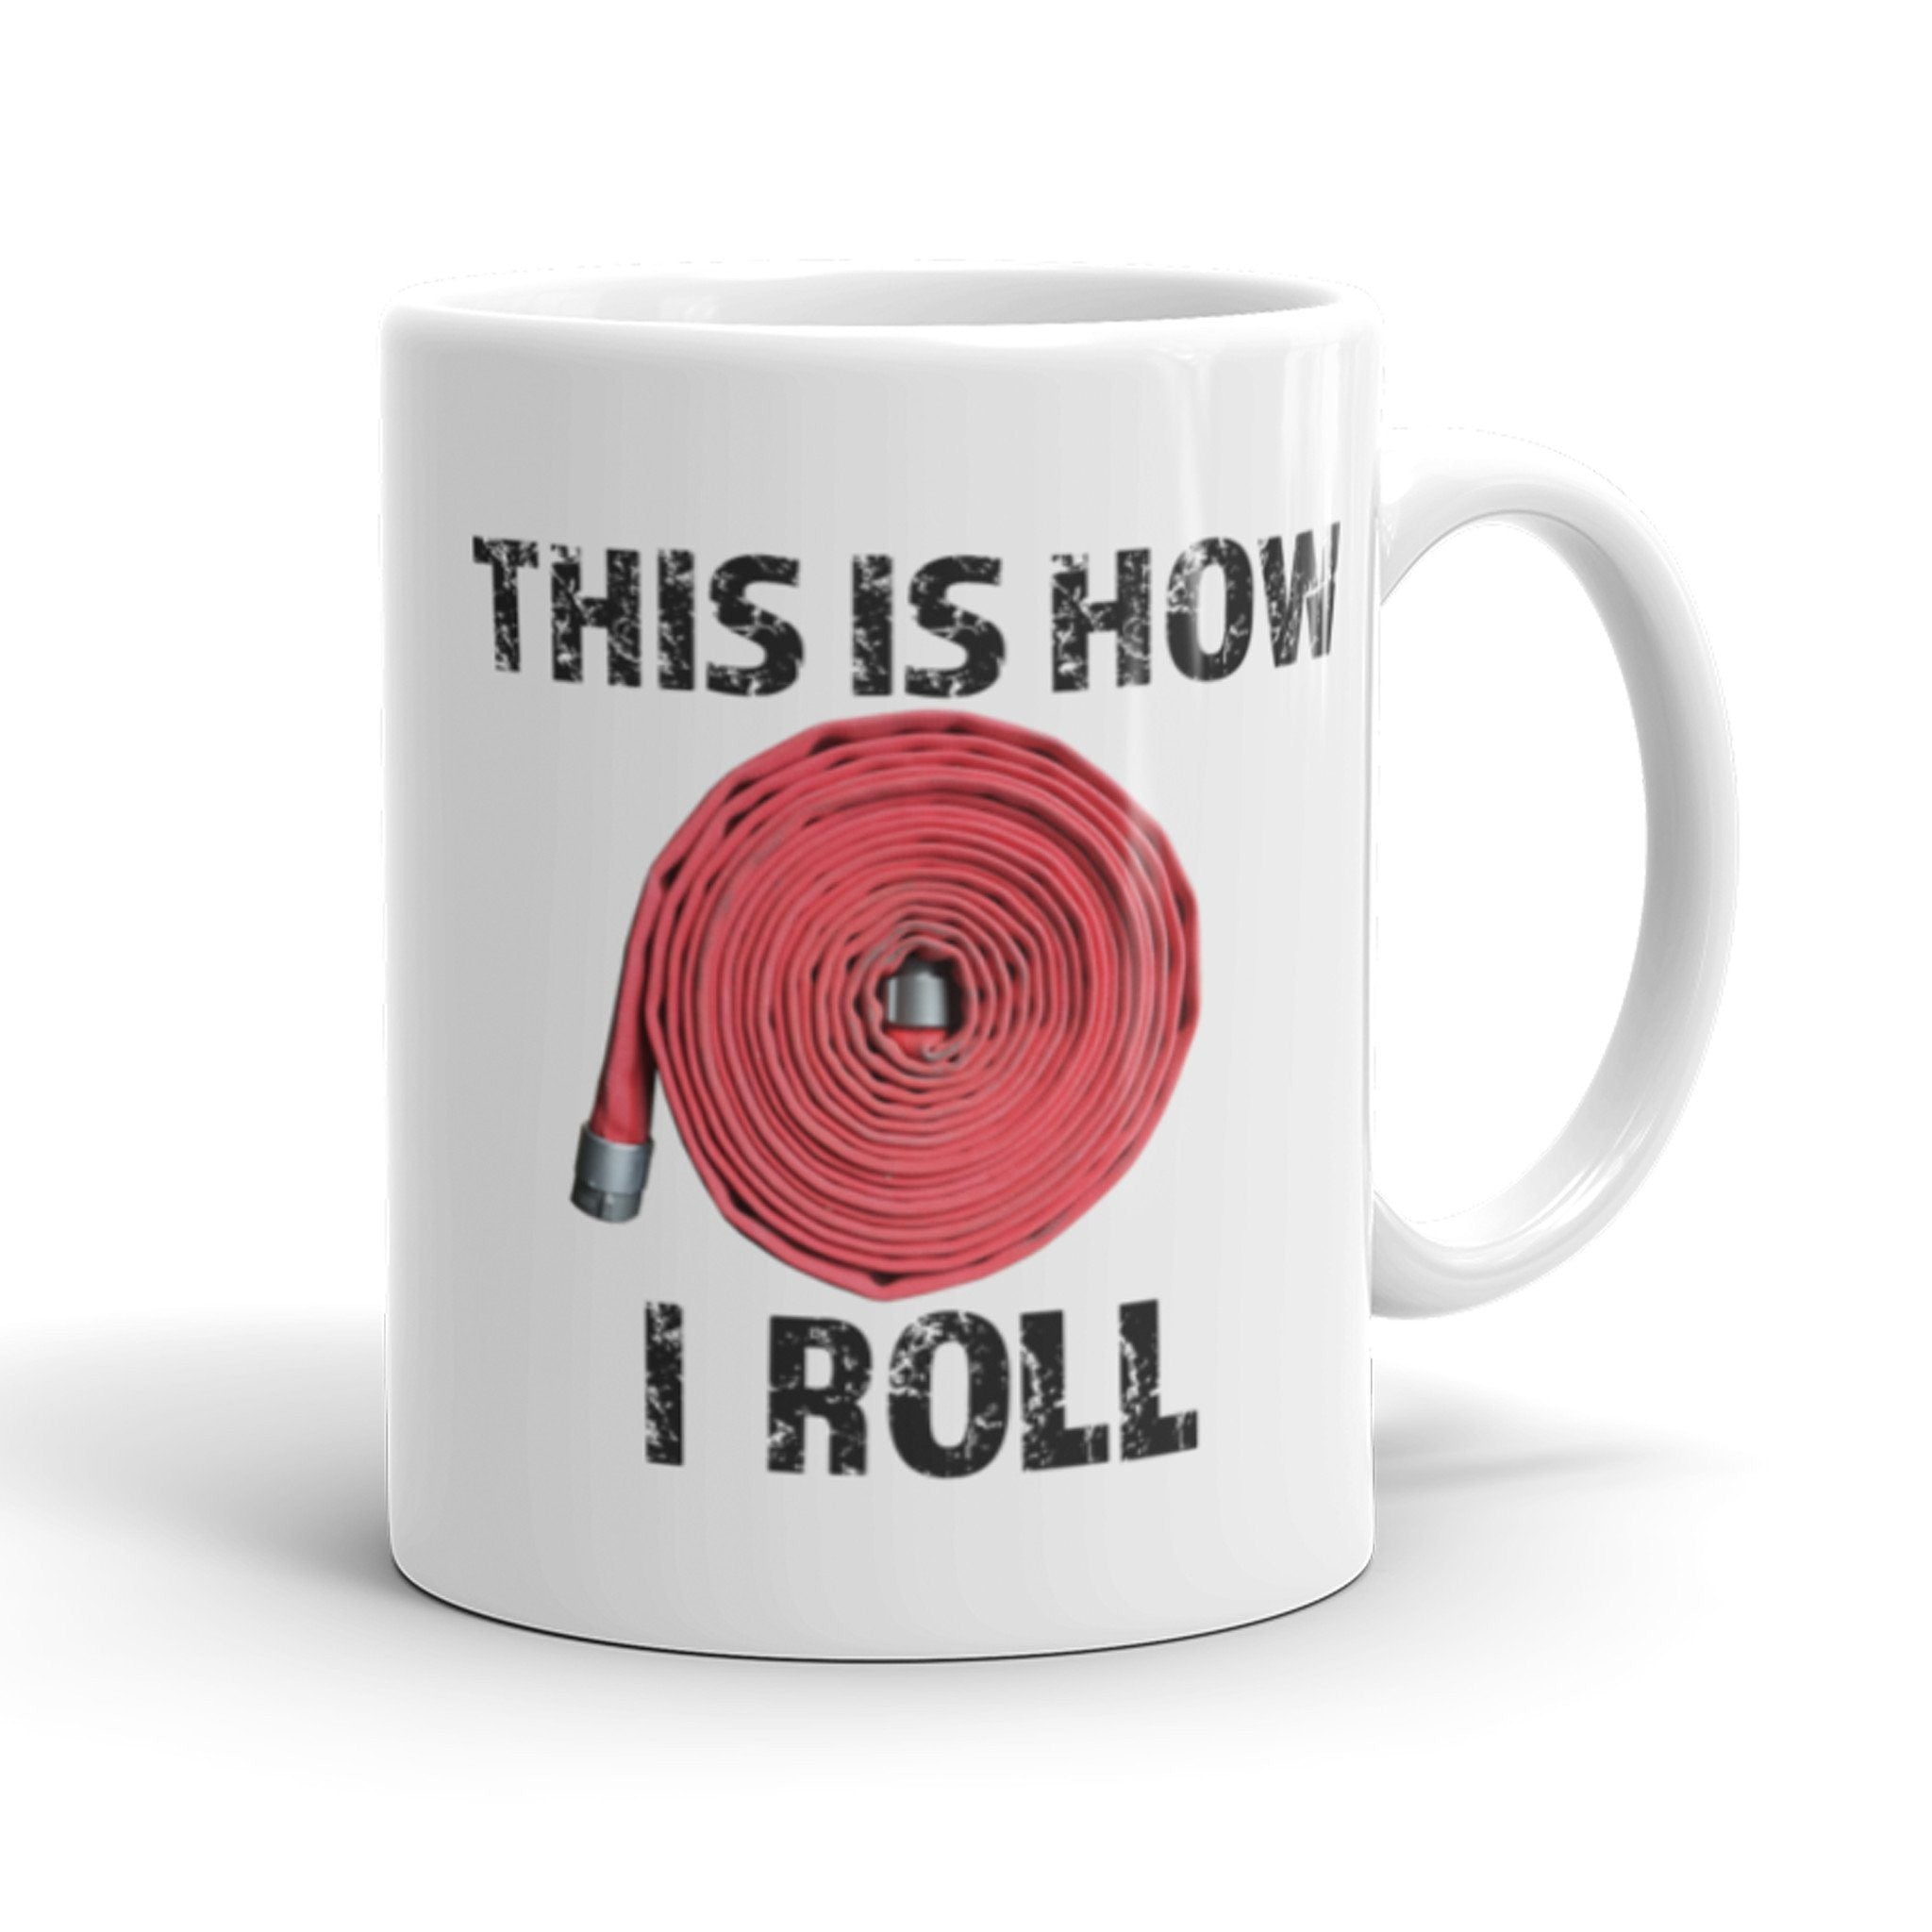 This is how I roll - Firefighter Mug - Anomaly Creations & Designs  - 1